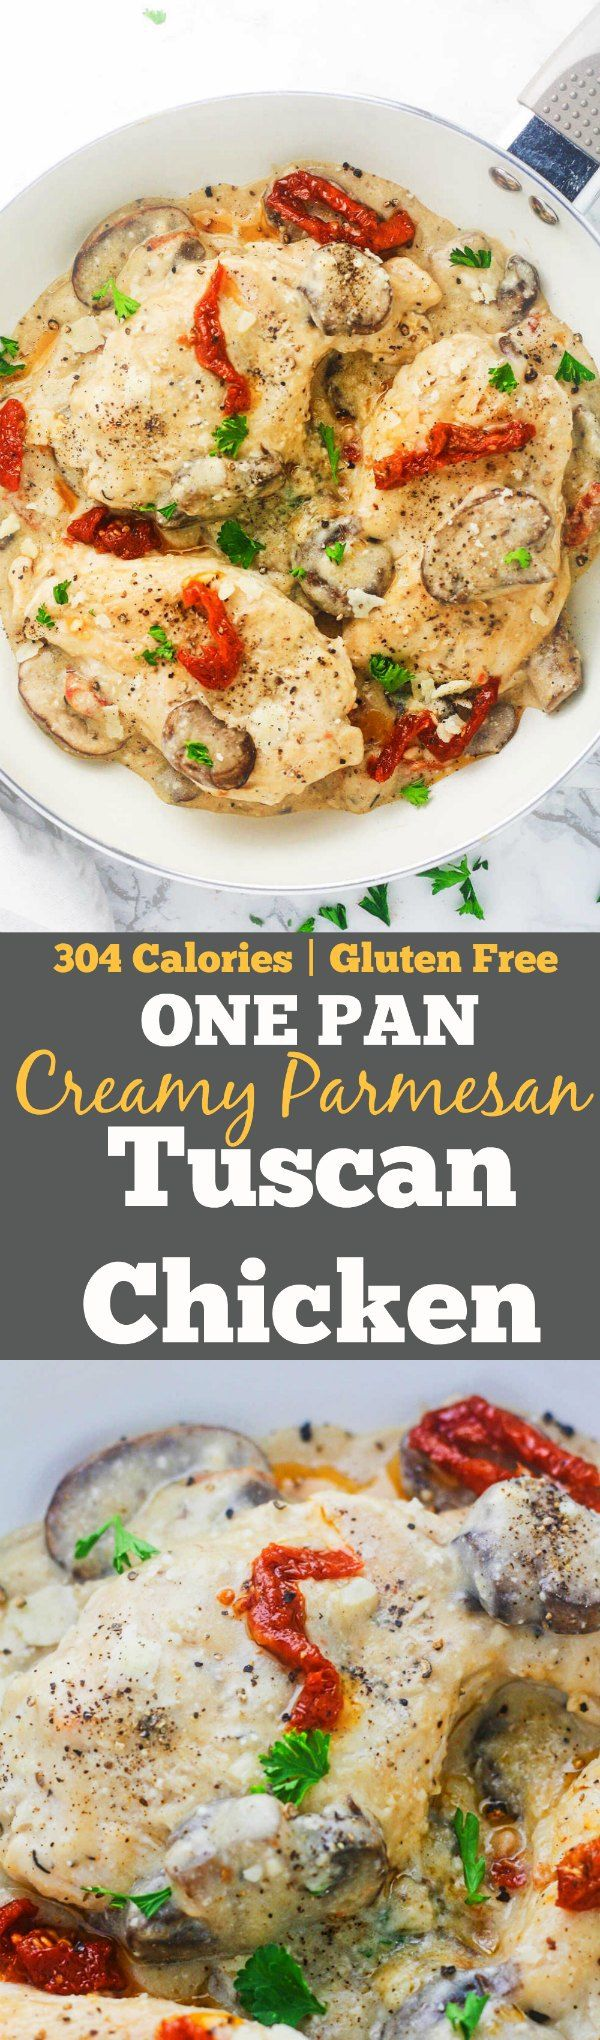 One pan, creamy Parmesan Tuscan Chicken. Succulent chicken breasts, coated in a deliciously creamy Greek yogurt Parmesan sauce and topped with sun-dried tomatoes. This one pan meal is packed with flavors while still being gluten free and low calorie! www.itscheatdayeveryday.com